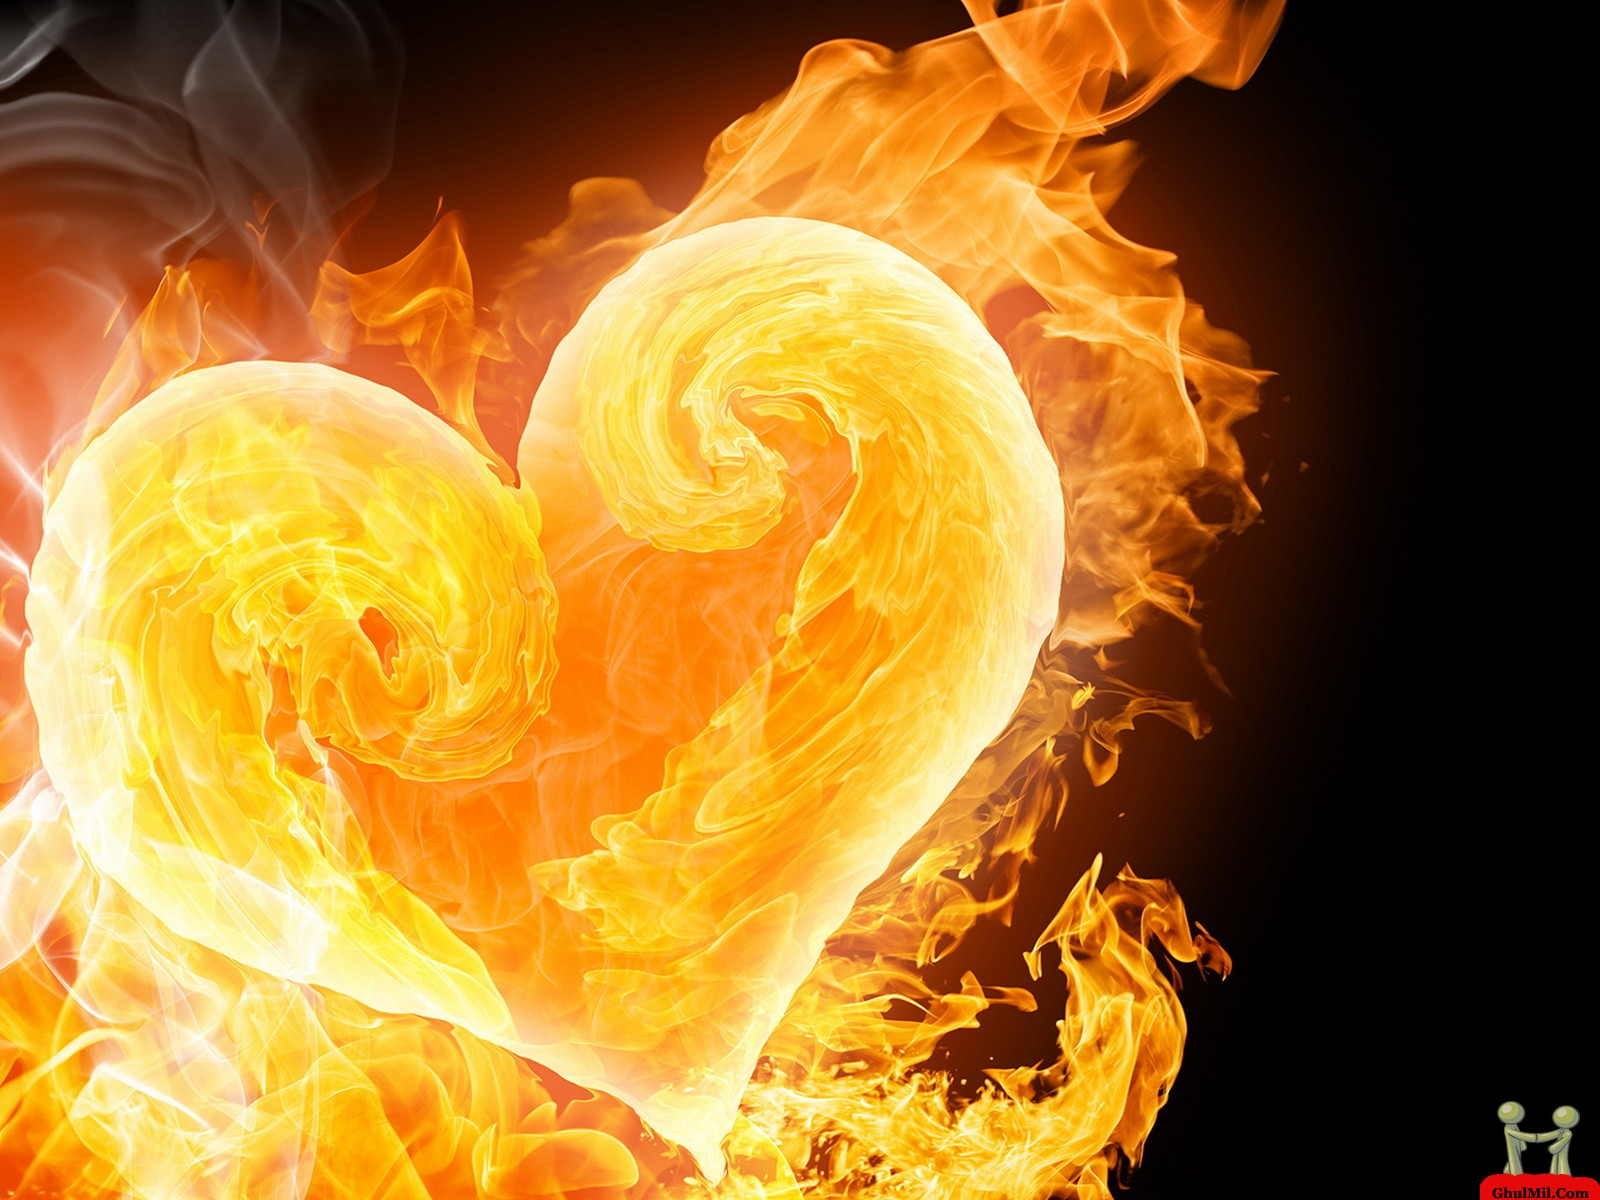 http://1.bp.blogspot.com/-1uDTAPRUZ6M/TzkwHz66NRI/AAAAAAAAPJA/luxrUZOn4sY/s1600/beautiful-3d-fire-burning-love-heart-hd-wallpaper.jpg